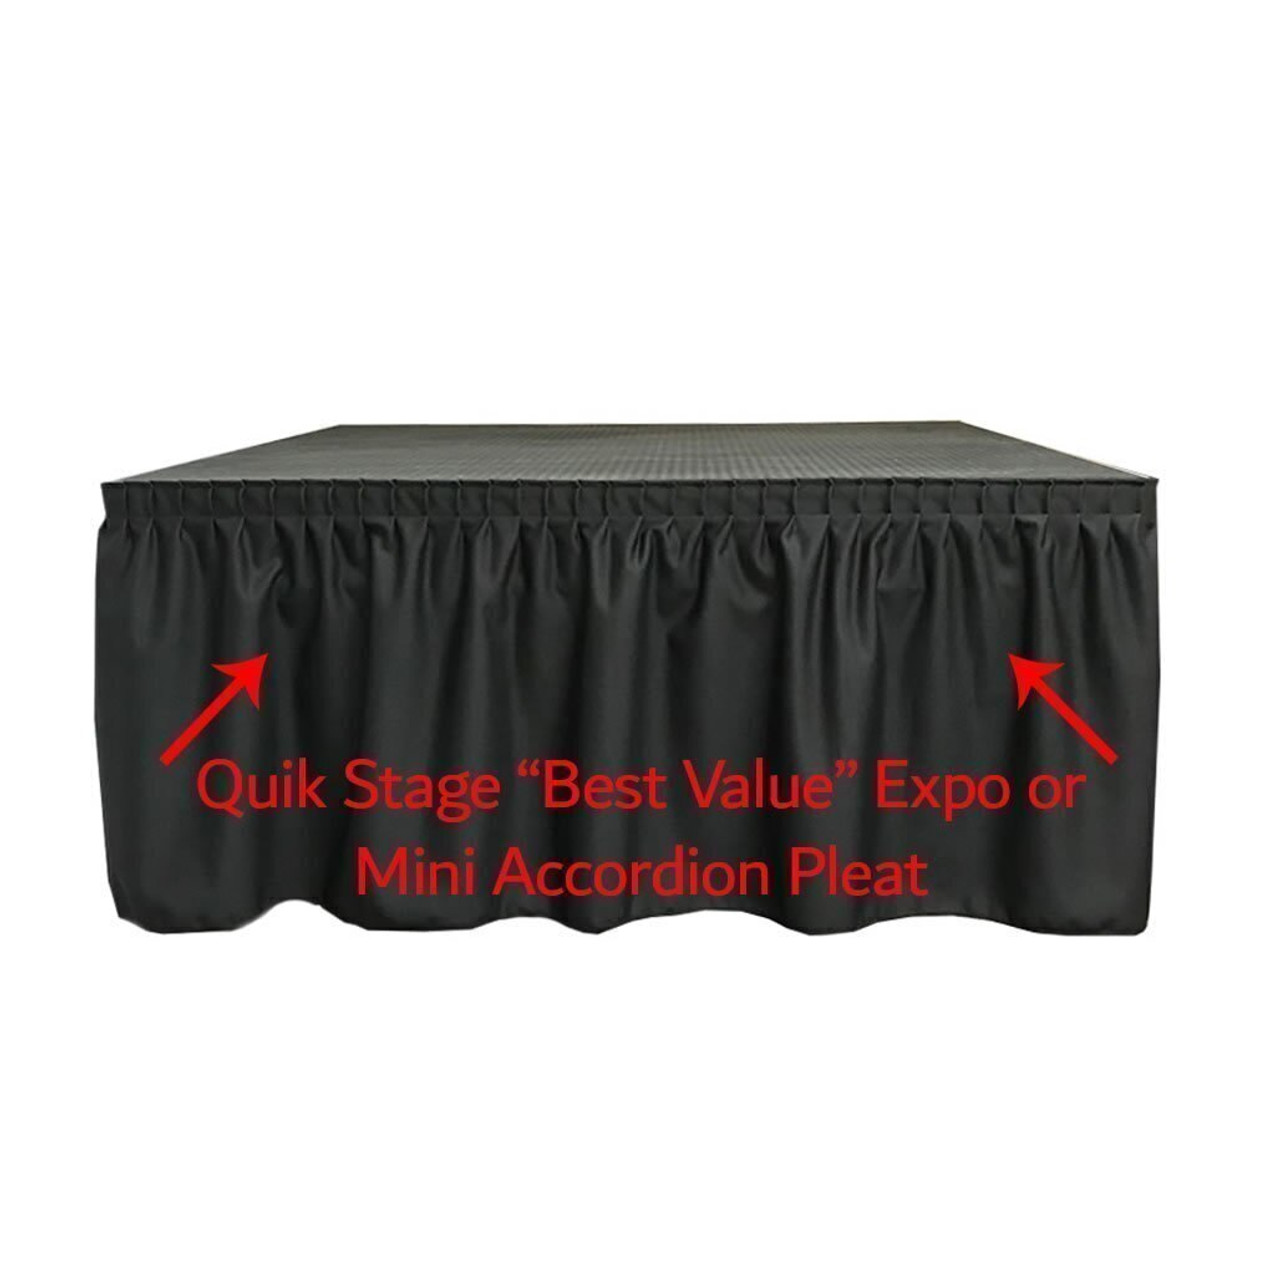 High Quality Quik Stage 4' x 28' High Portable Stage Package with Black Polyvinyl Non-Skid Surface. Additional Heights and Surfaces Available - Best Value Expo Pleat Stage Skirting